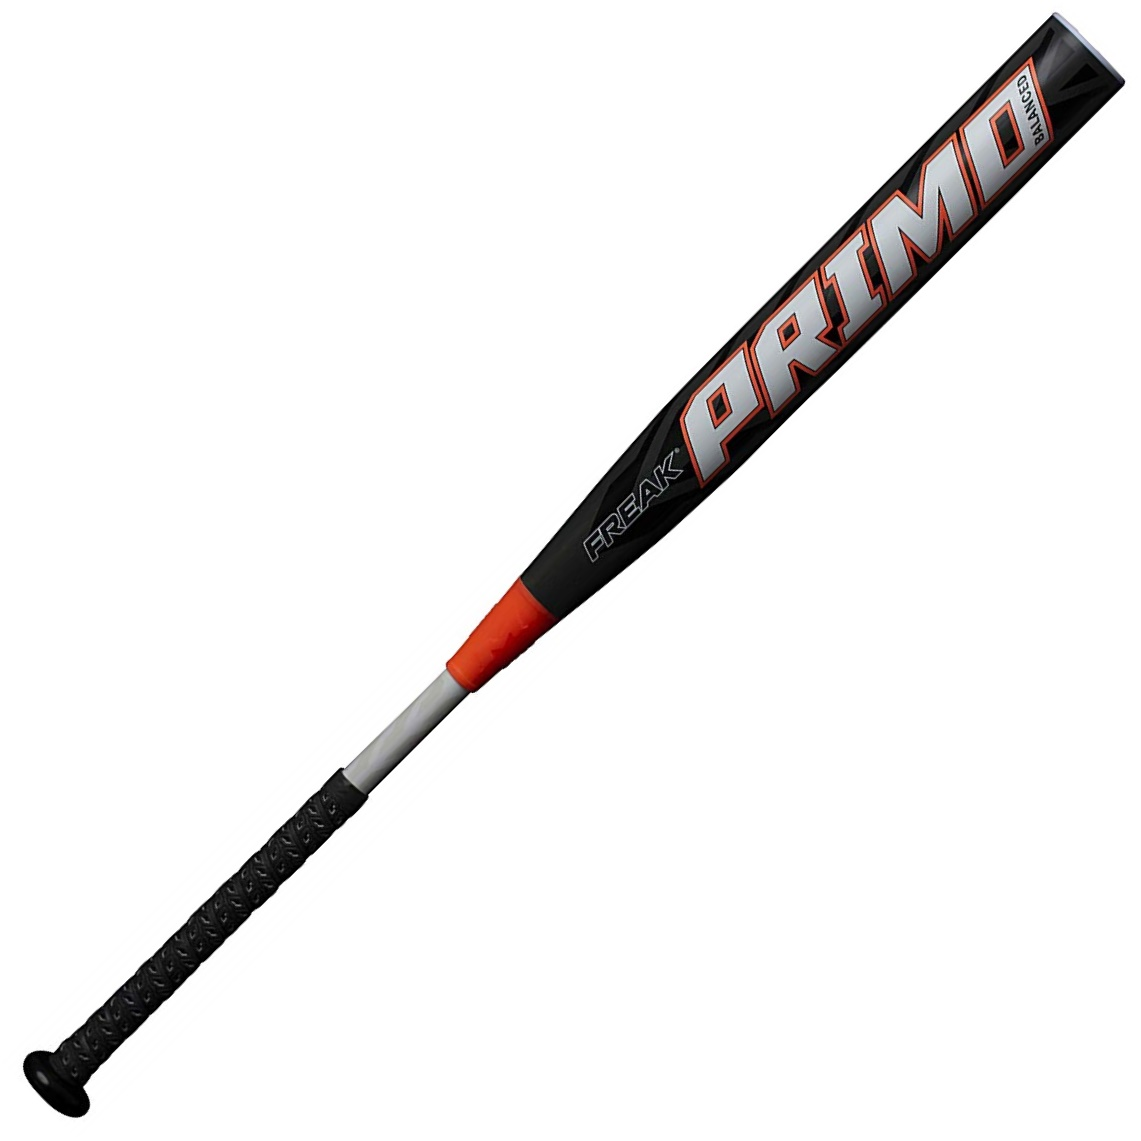 miken-freak-primo-balanced-asa-slowpitch-softball-bat-14-barrel-34-in-26-oz MPMOBA-3-26 Miken 658925043796 Mikens breakthrough tetra-core tech optimizes performance by utilizing an inner core